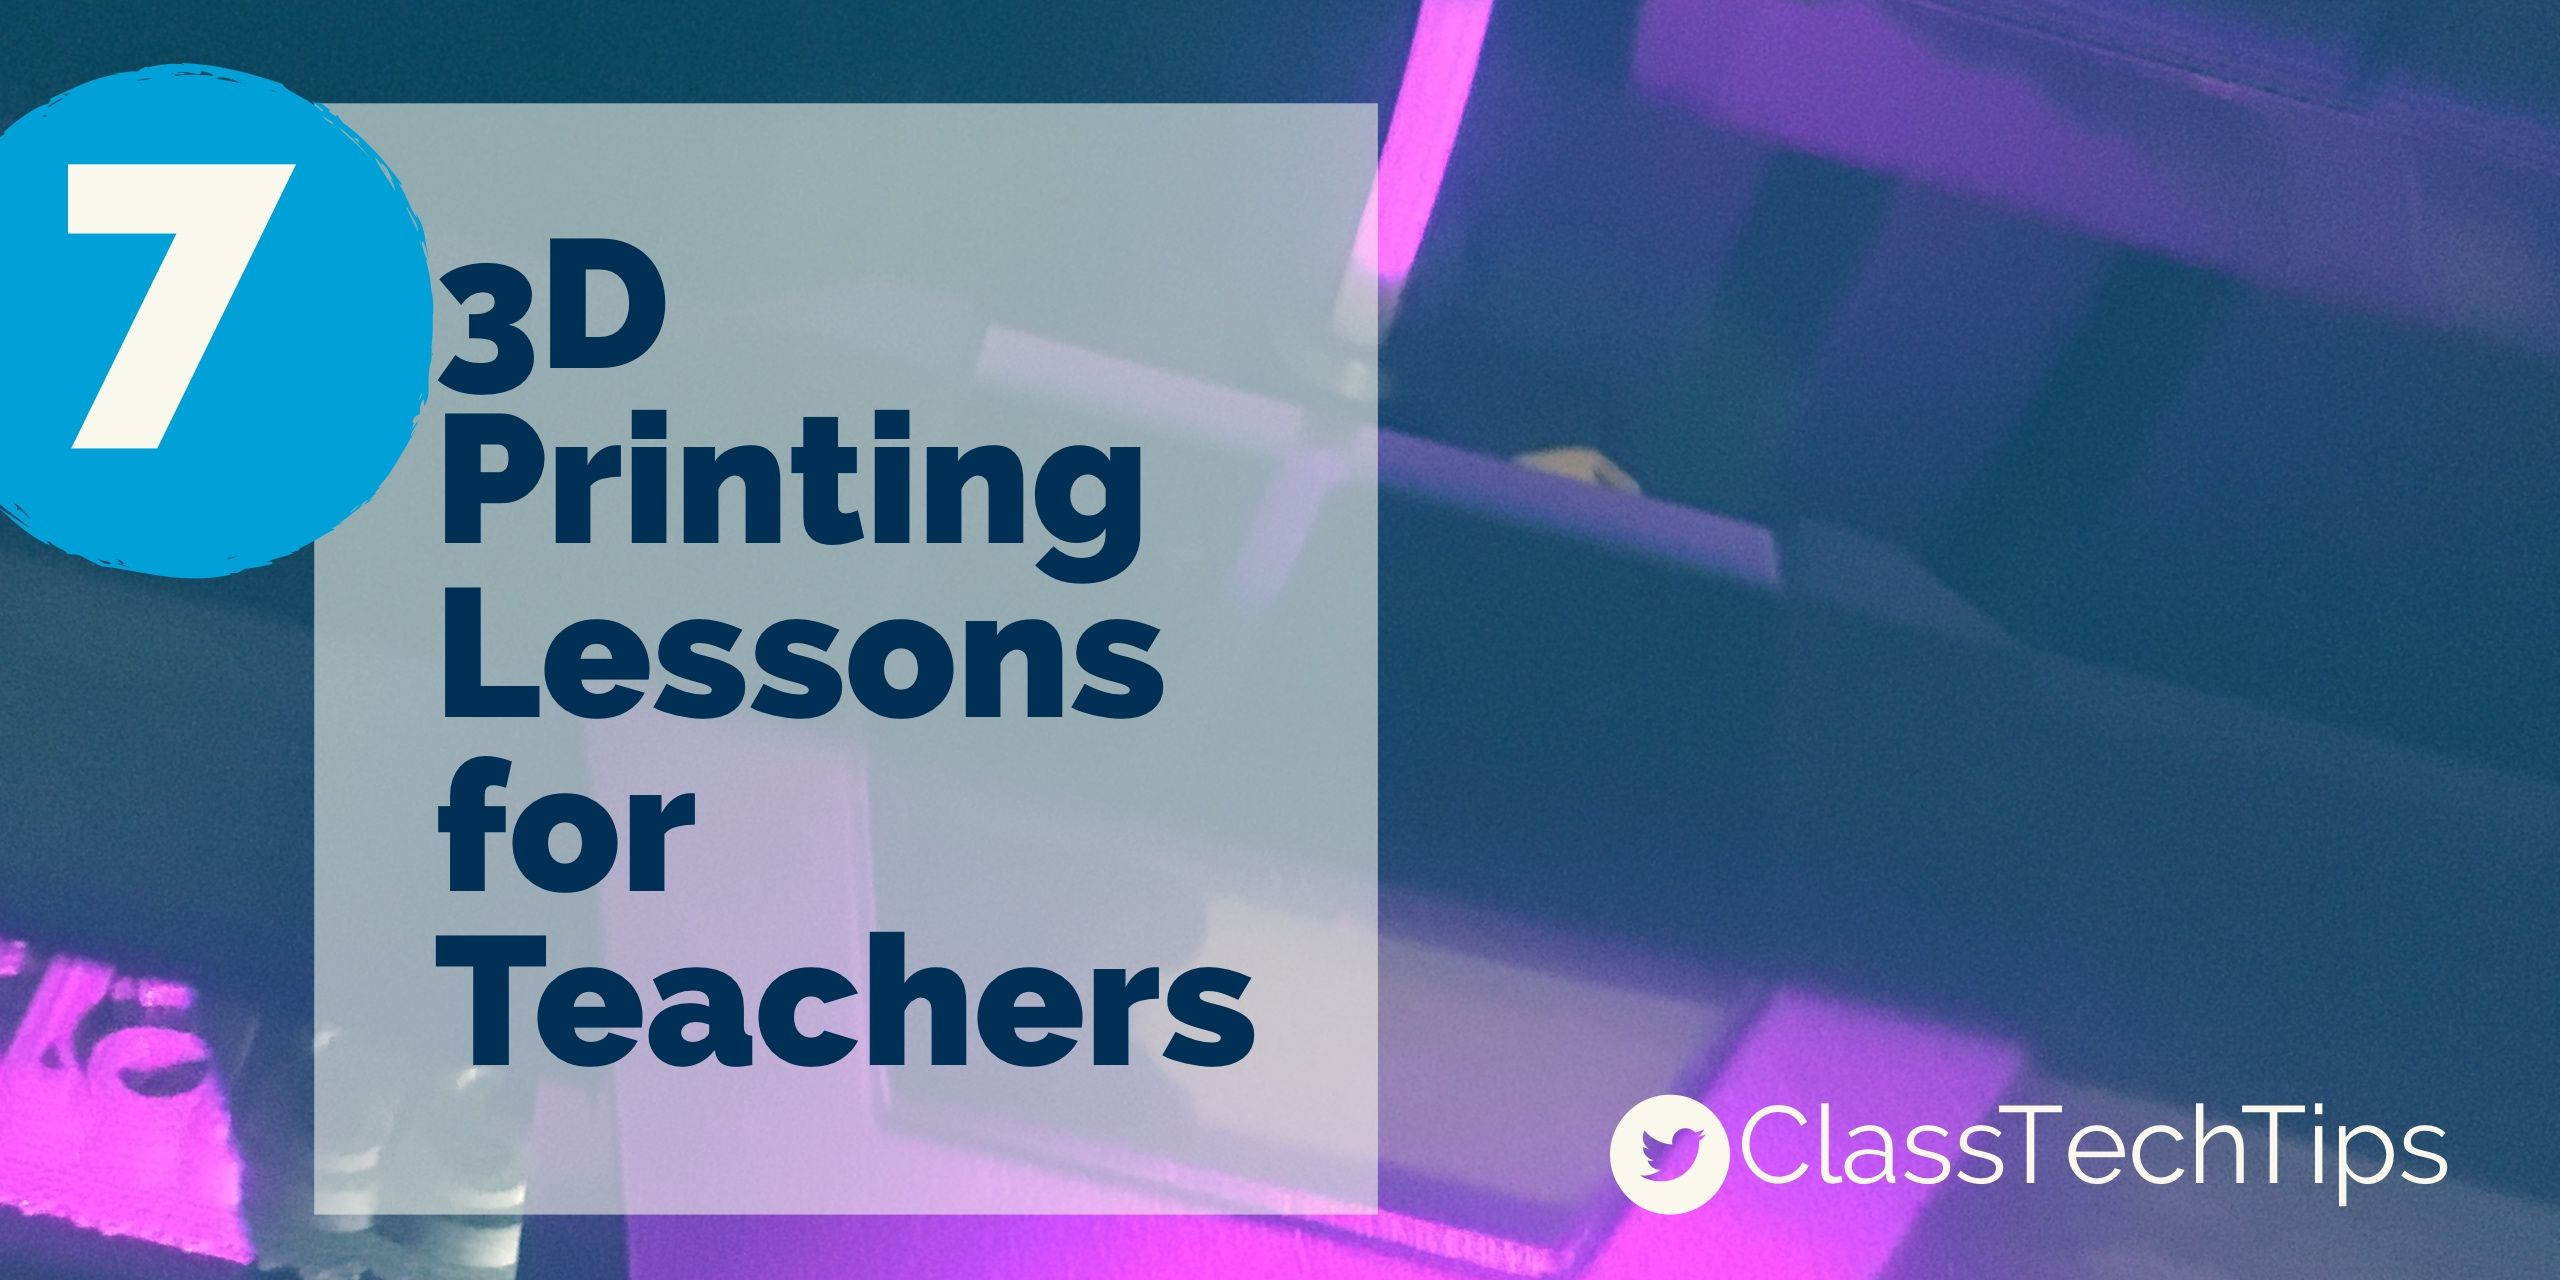 7 3D Printing Lessons for Teachers | Educational Technology